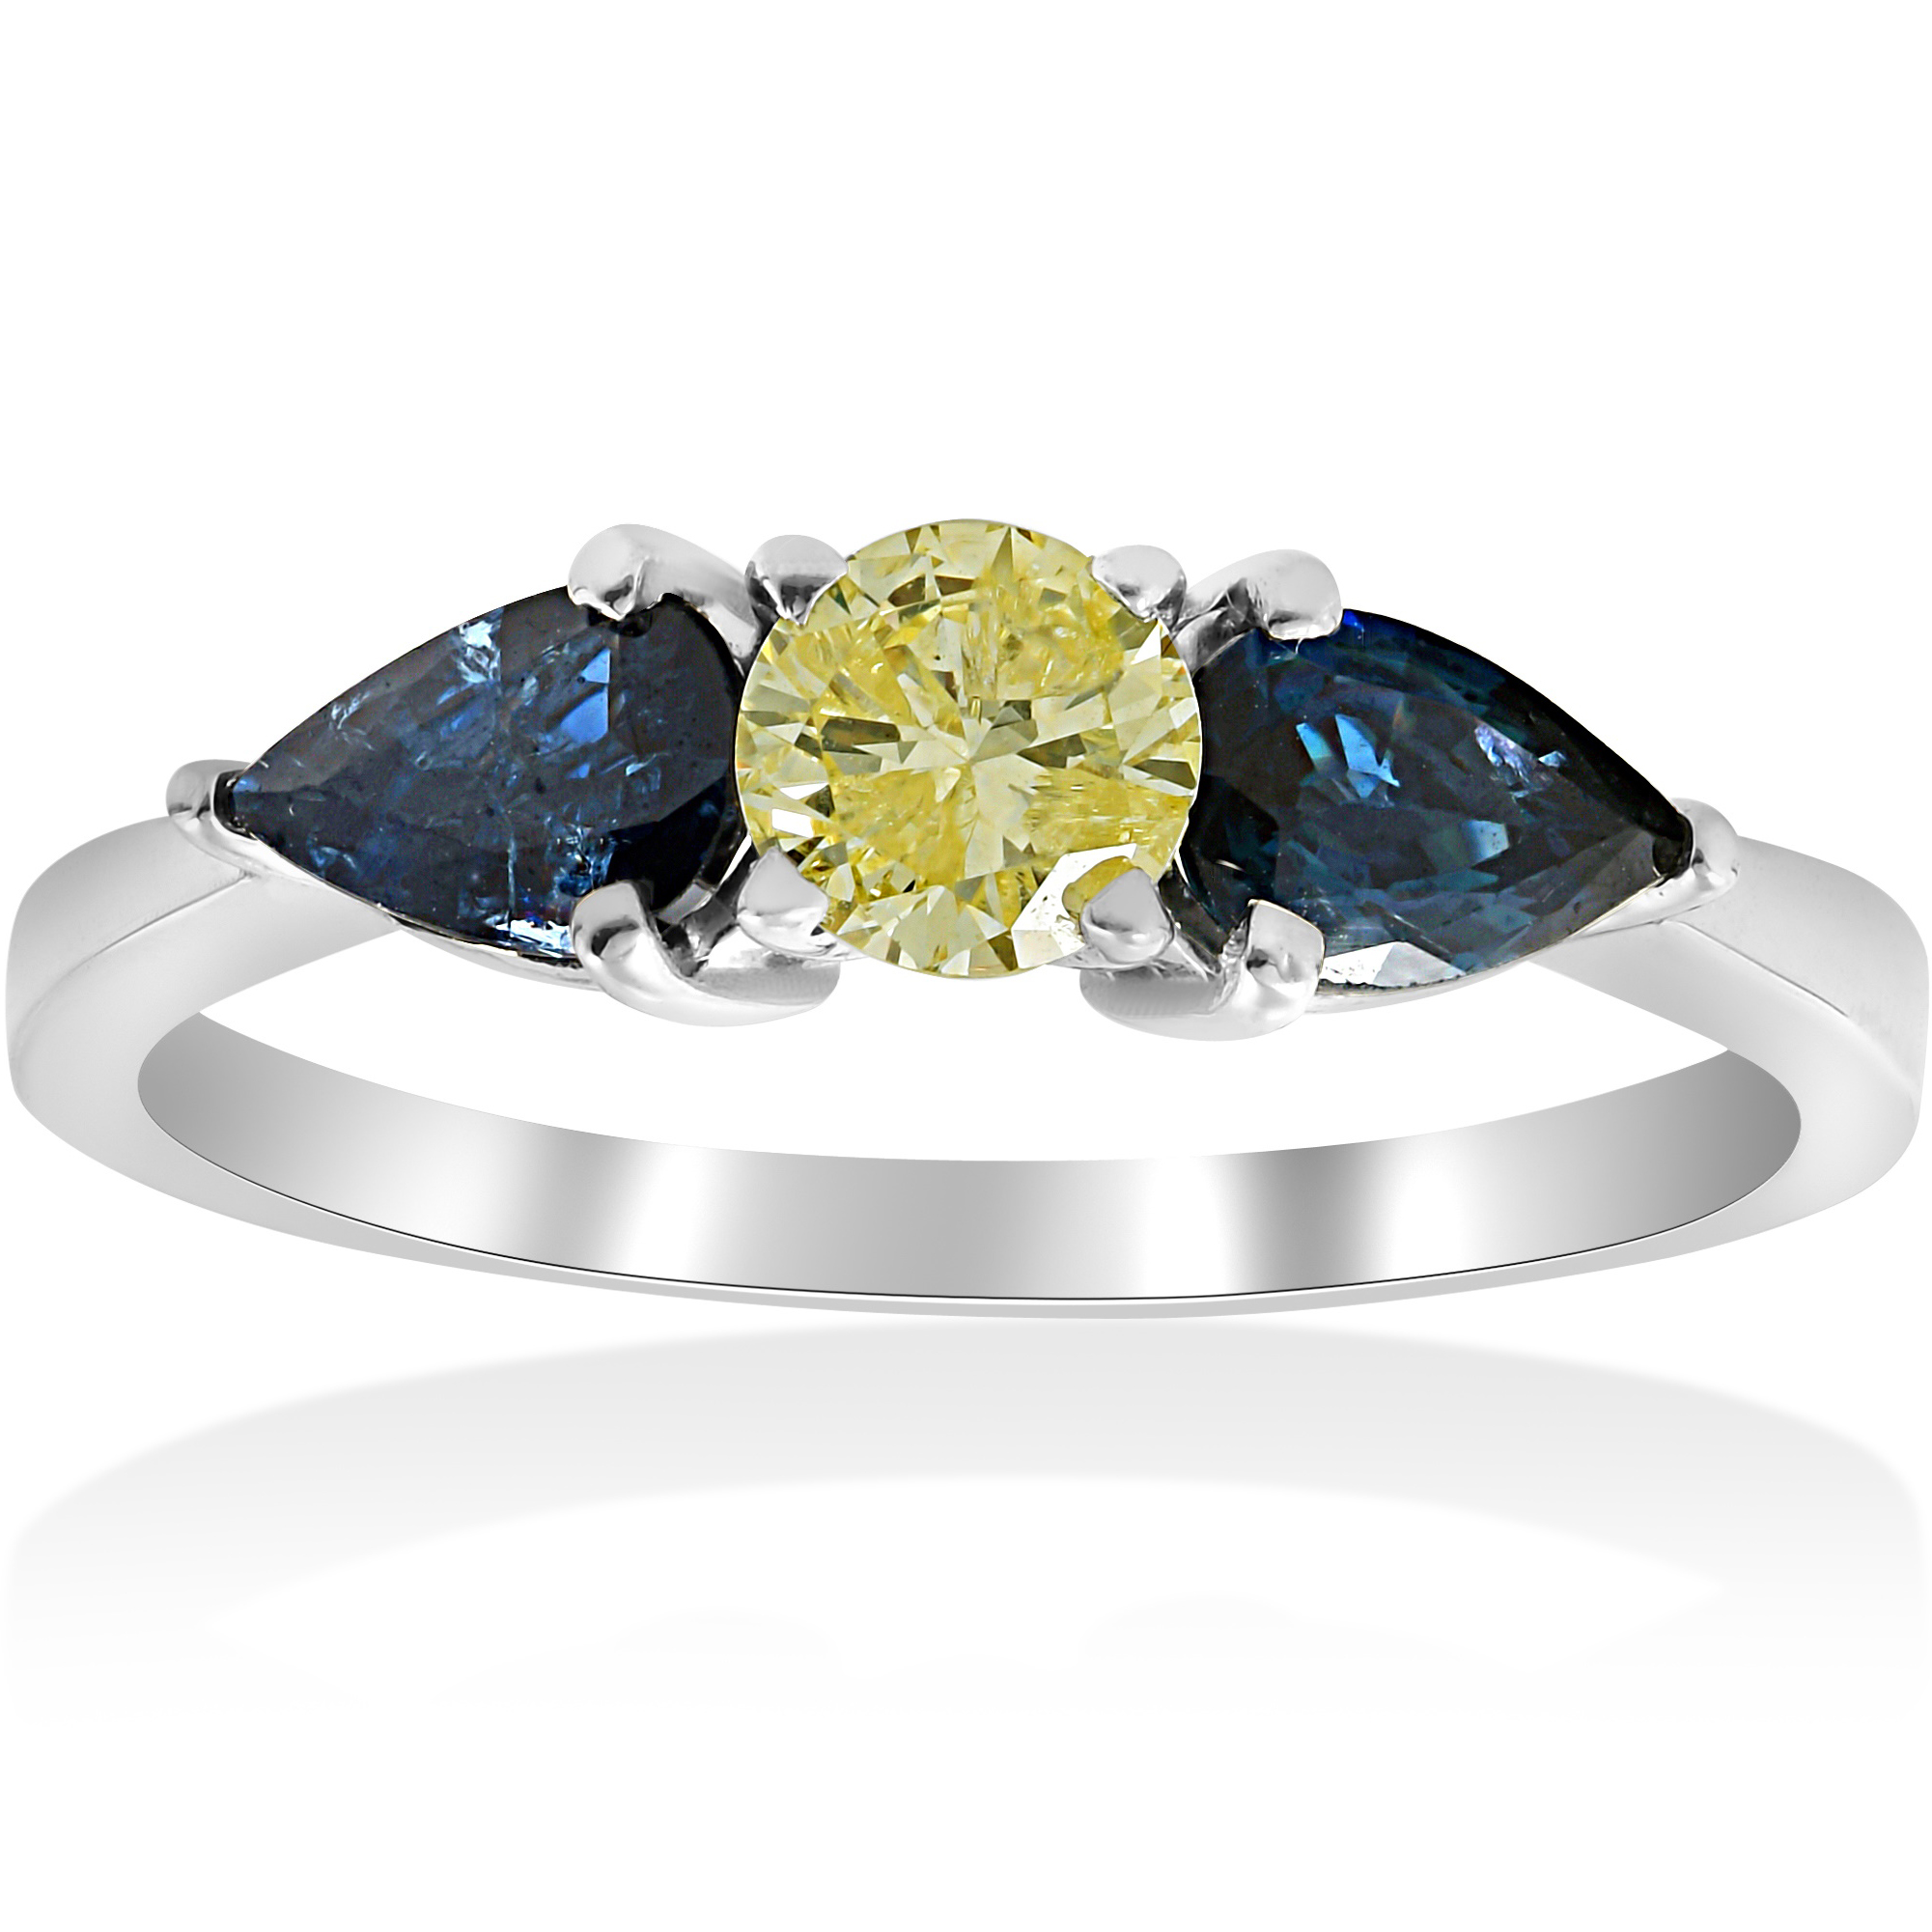 26d9d923cac251 Details about 1ct 3 Stone Fancy Yellow Diamond Pear Shape Blue Sapphire Engagement  Ring 14k WG